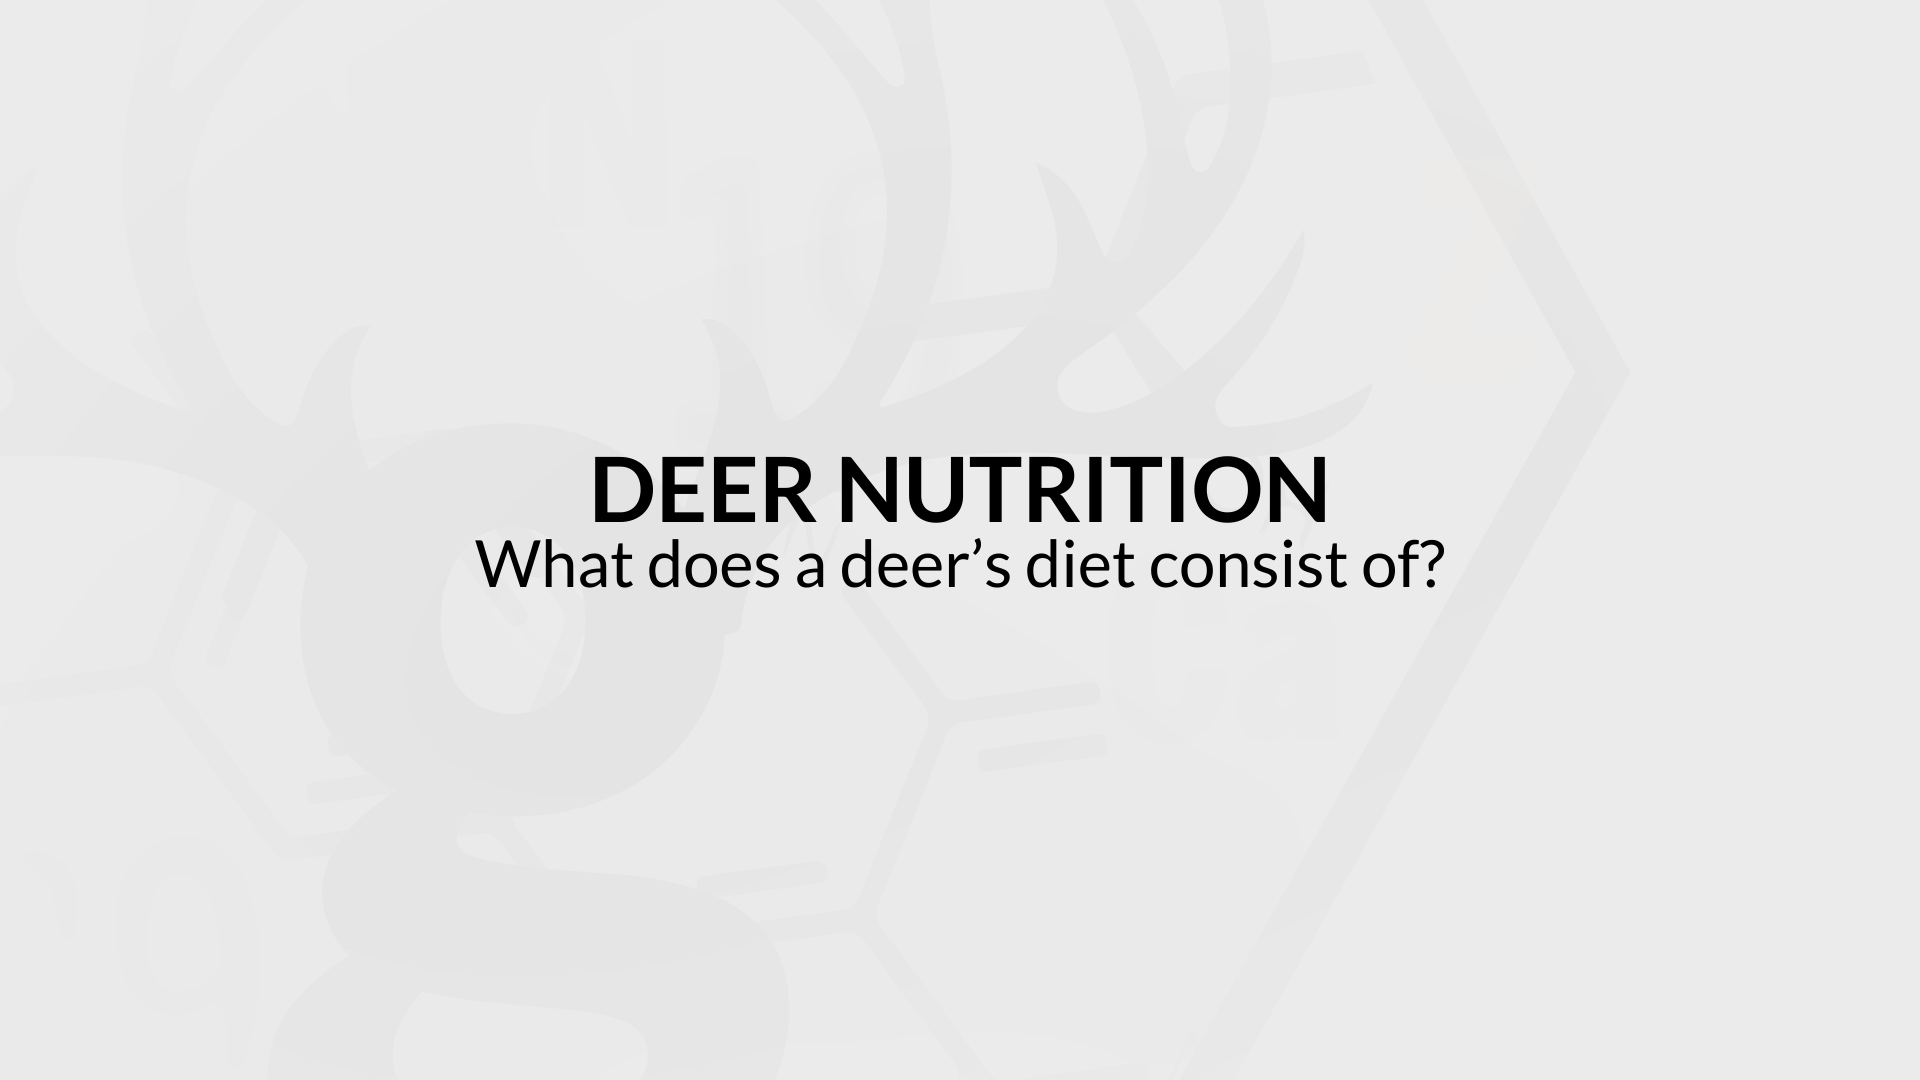 What does a deer's diet consist of?